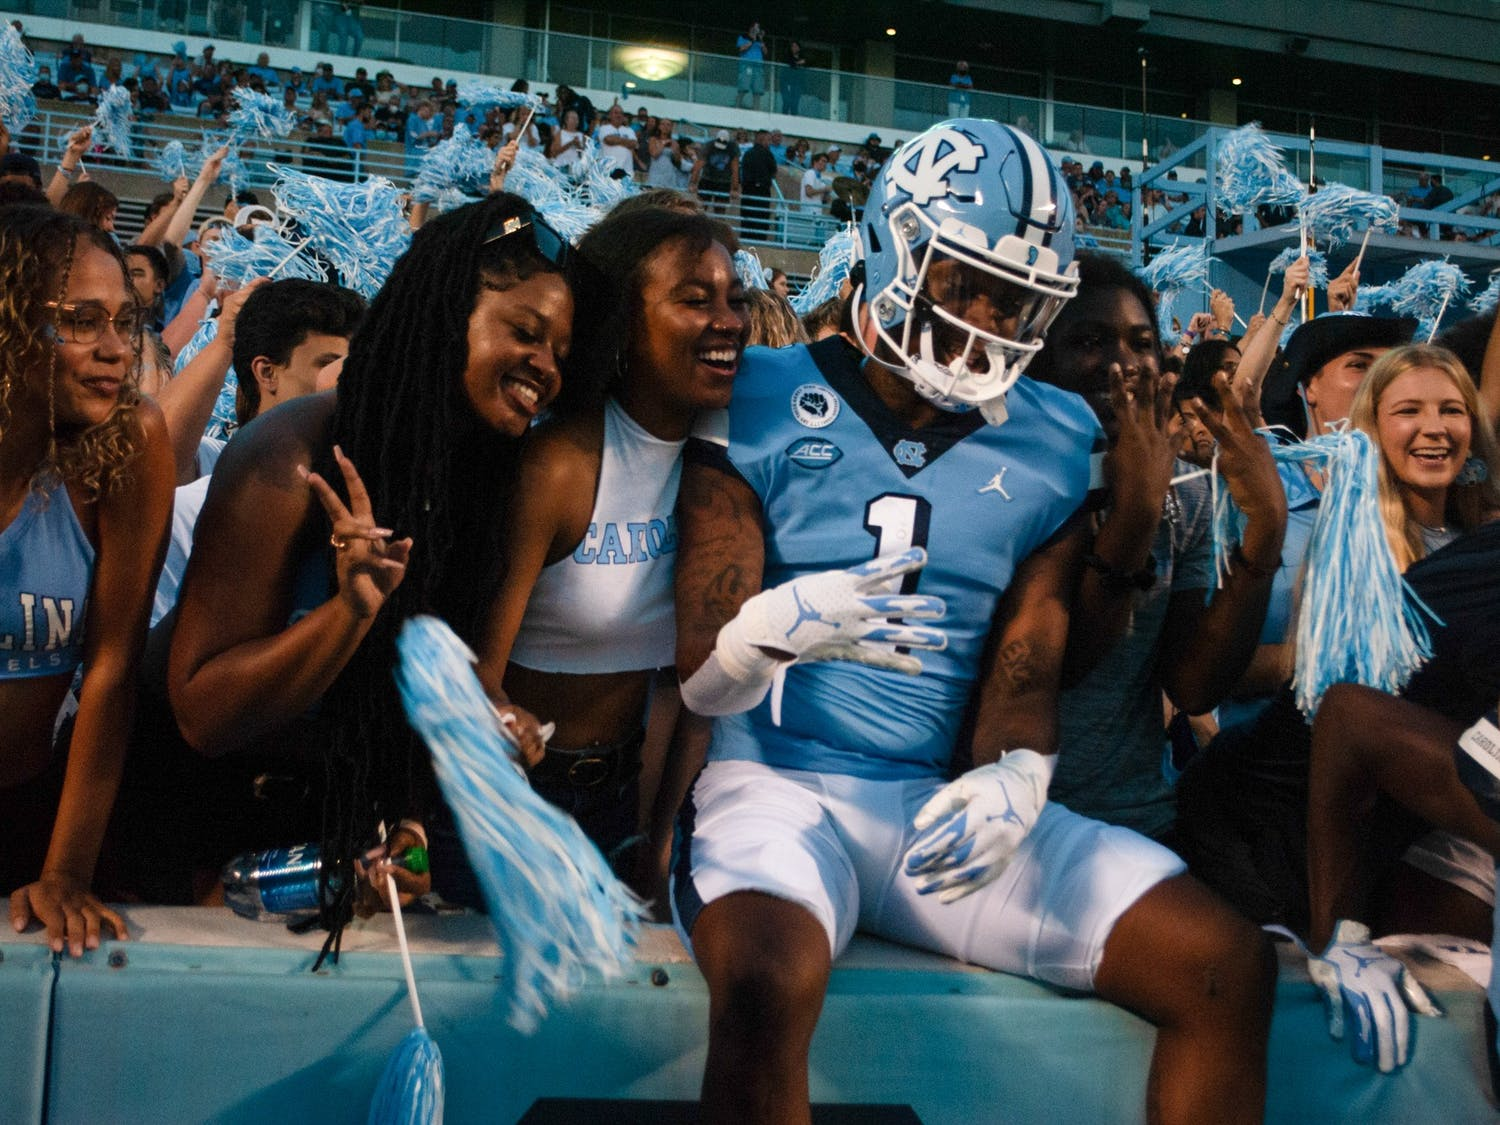 UNC sophomore wide receiver Khafre Brown (1) poses with fans before the Tar Heels start their home game against the University of Virginia. UNC defeated the Cavaliers 59-39, their second win of the season.